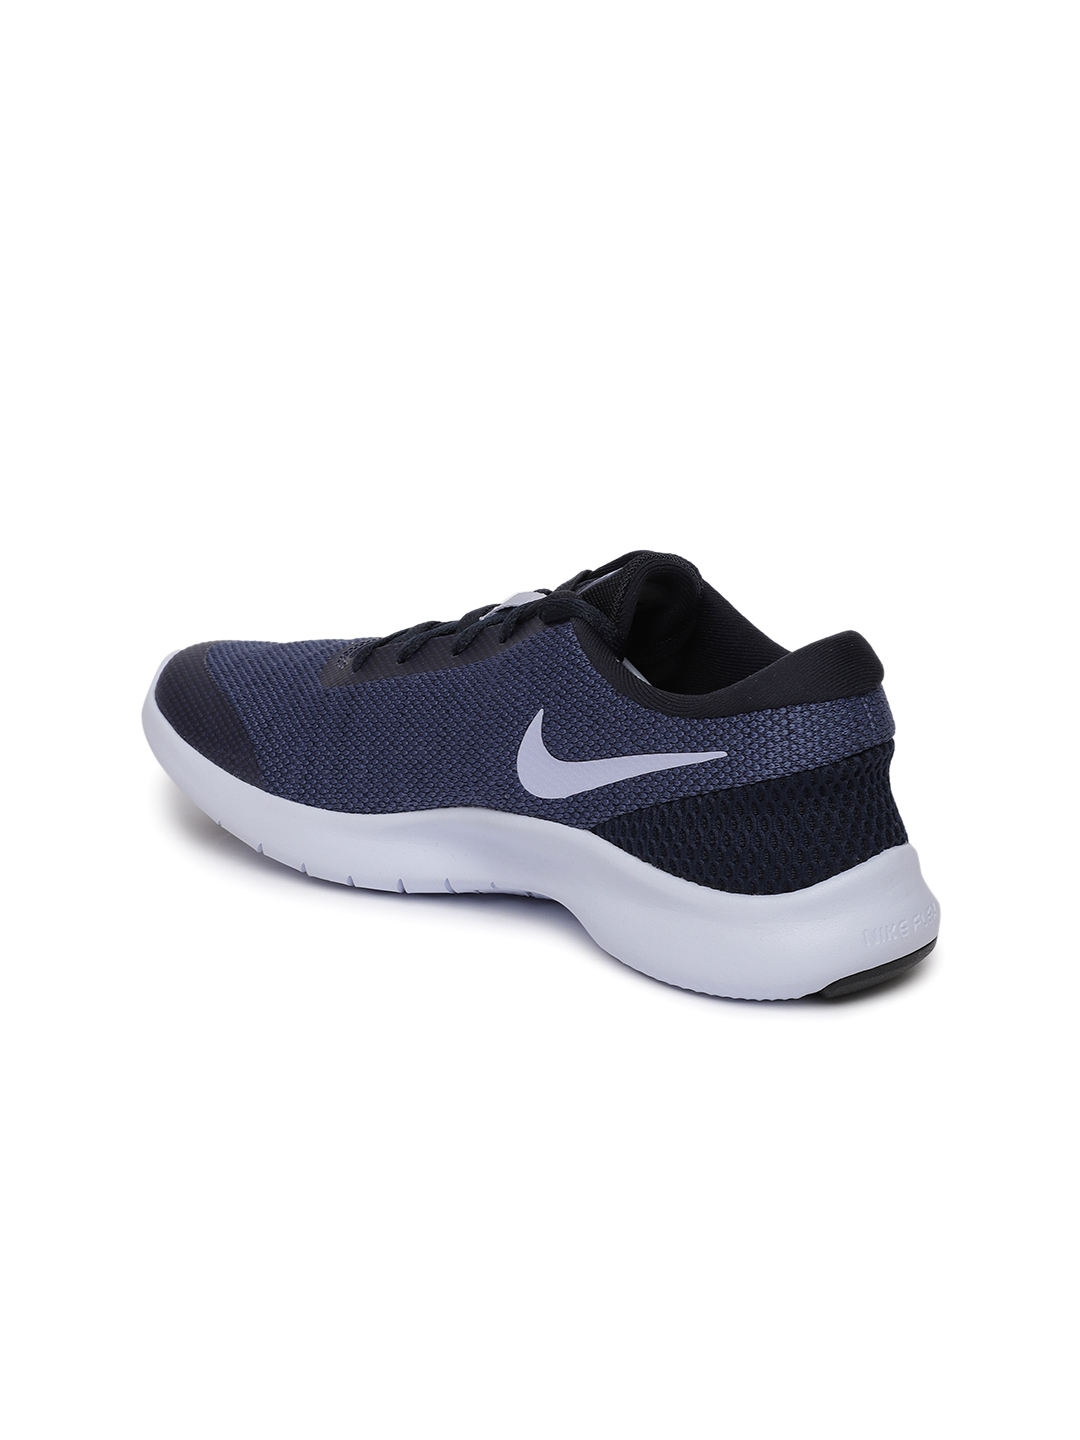 d7ec4c466fe16 Buy Nike Women Blue Flex Experience RN 7 Running Shoes - Sports ...